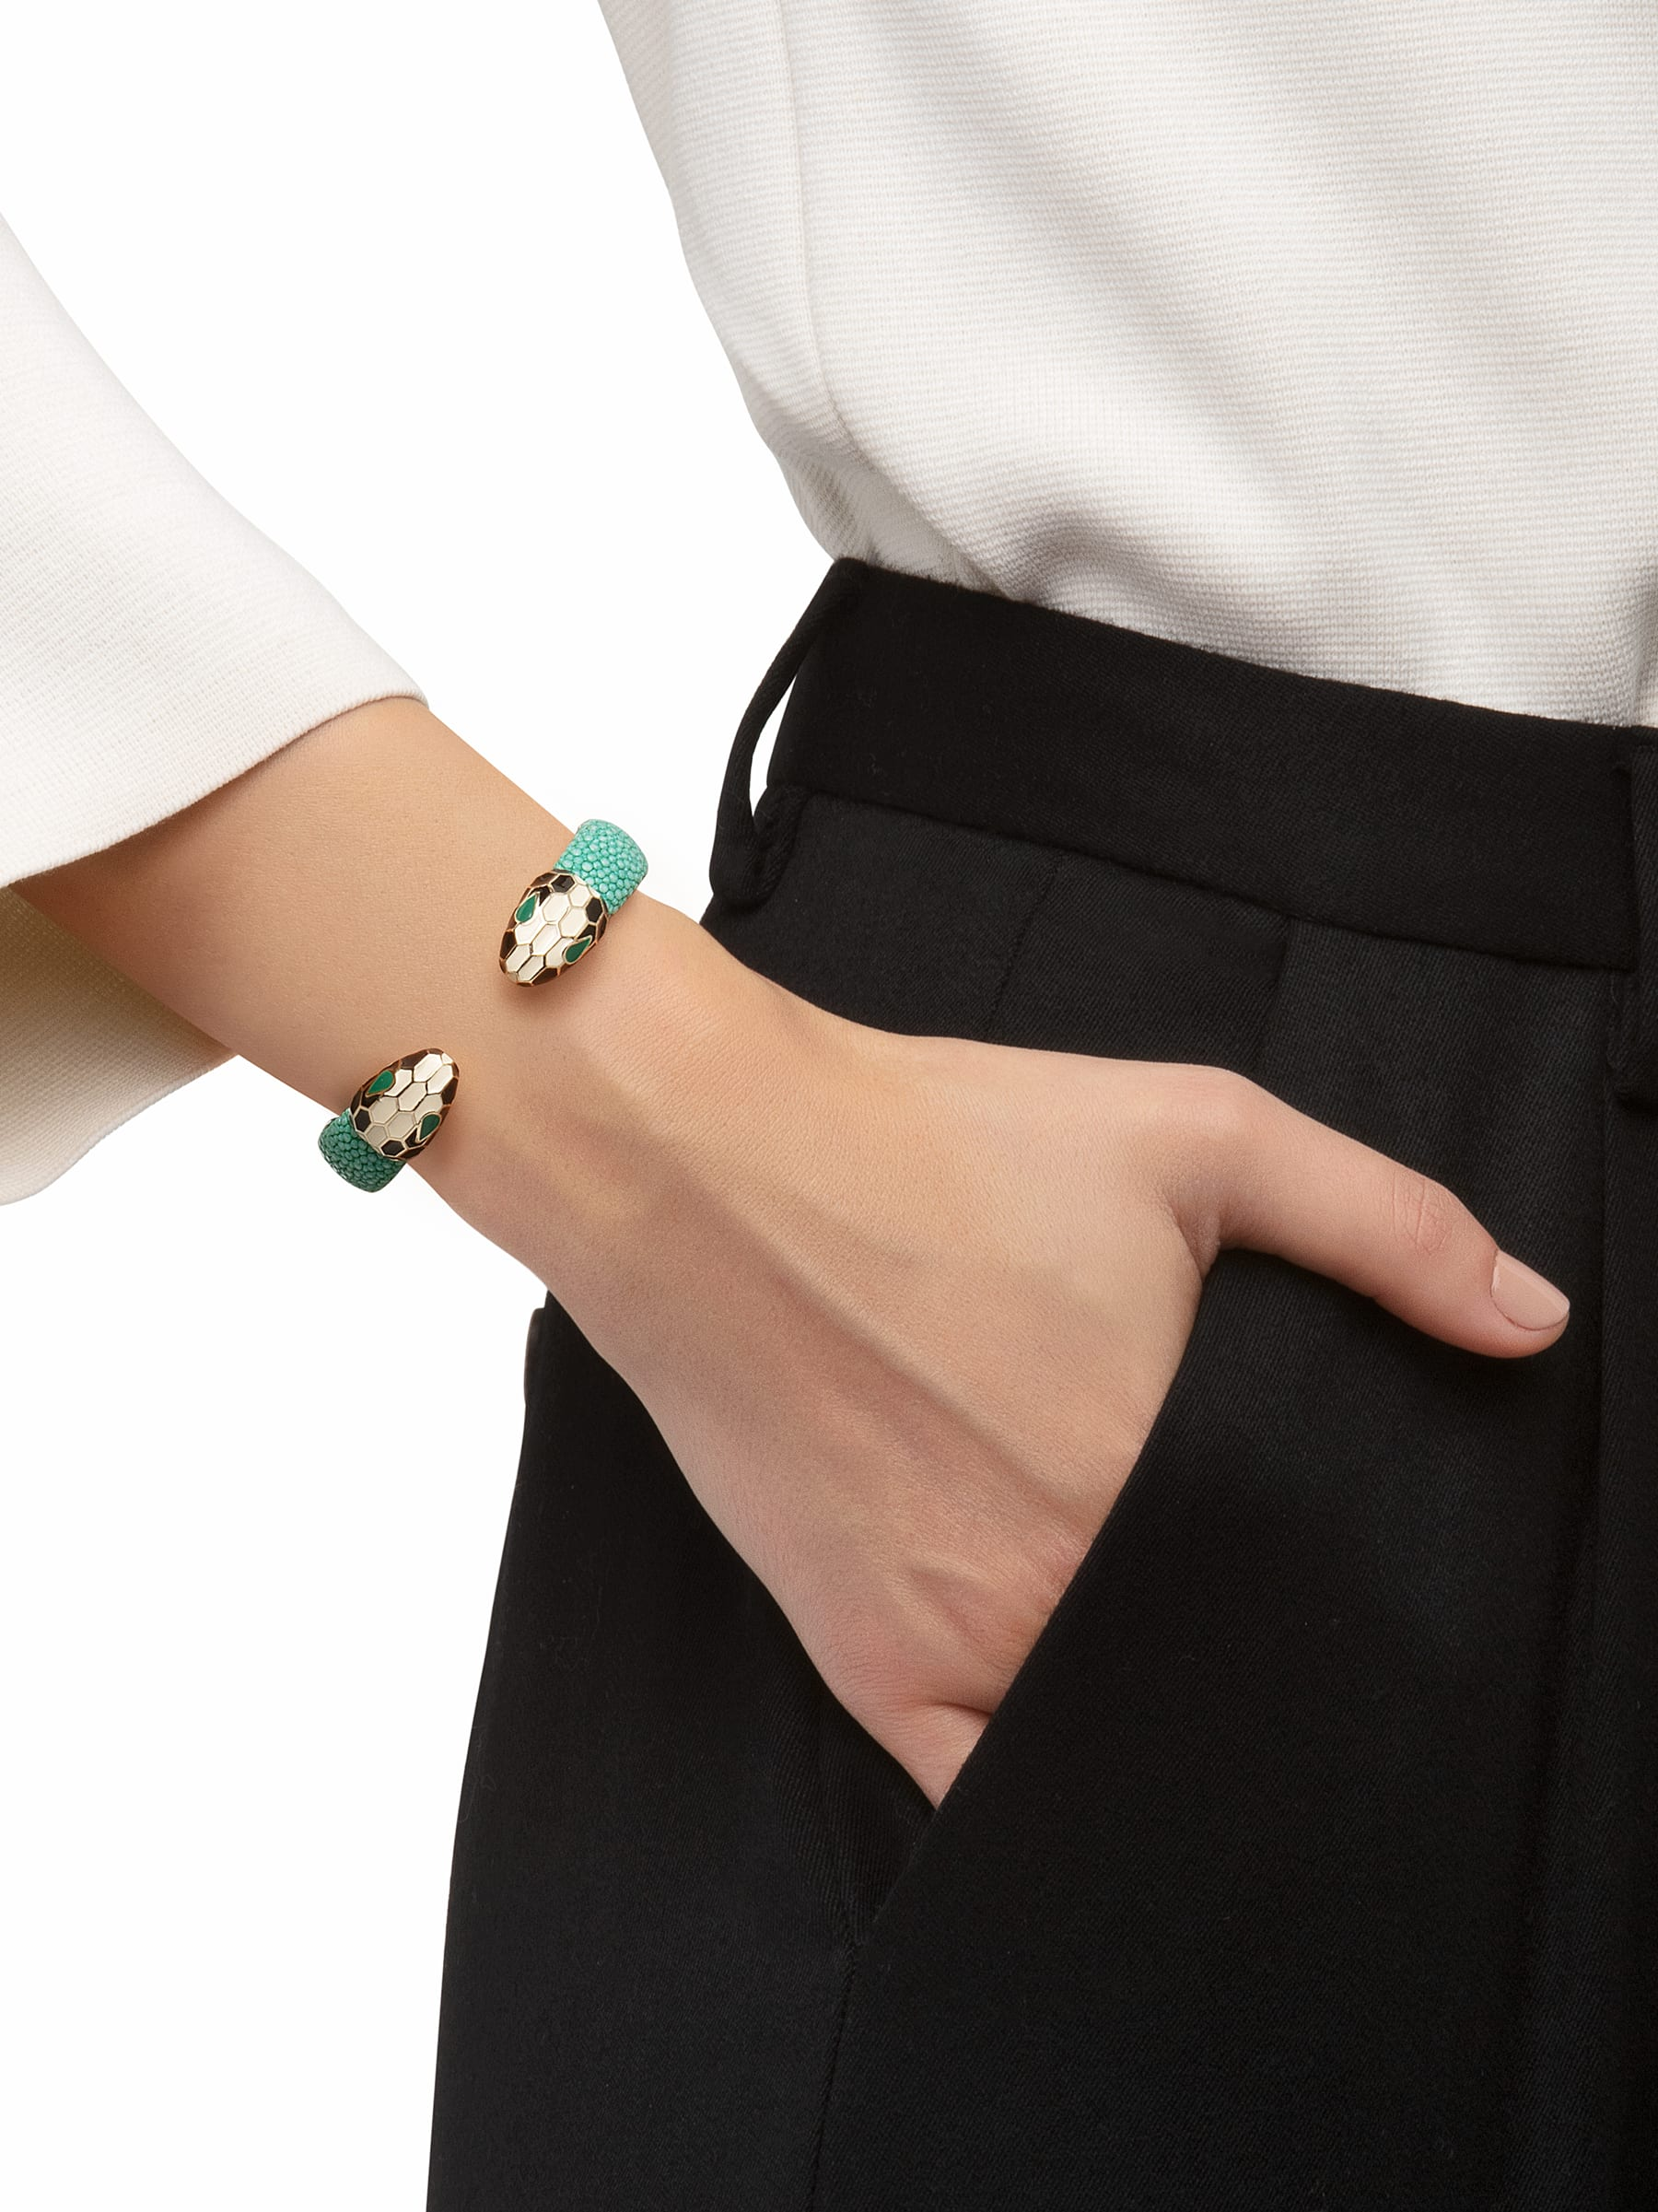 Green galuchat skin bracelet with contraire brass light gold plated iconic black and white enamel Serpenti head motif with malachite enamel eyes. Small. Also available in other colors in store. 2 (5.3 cm) SPContr-G-EG image 2